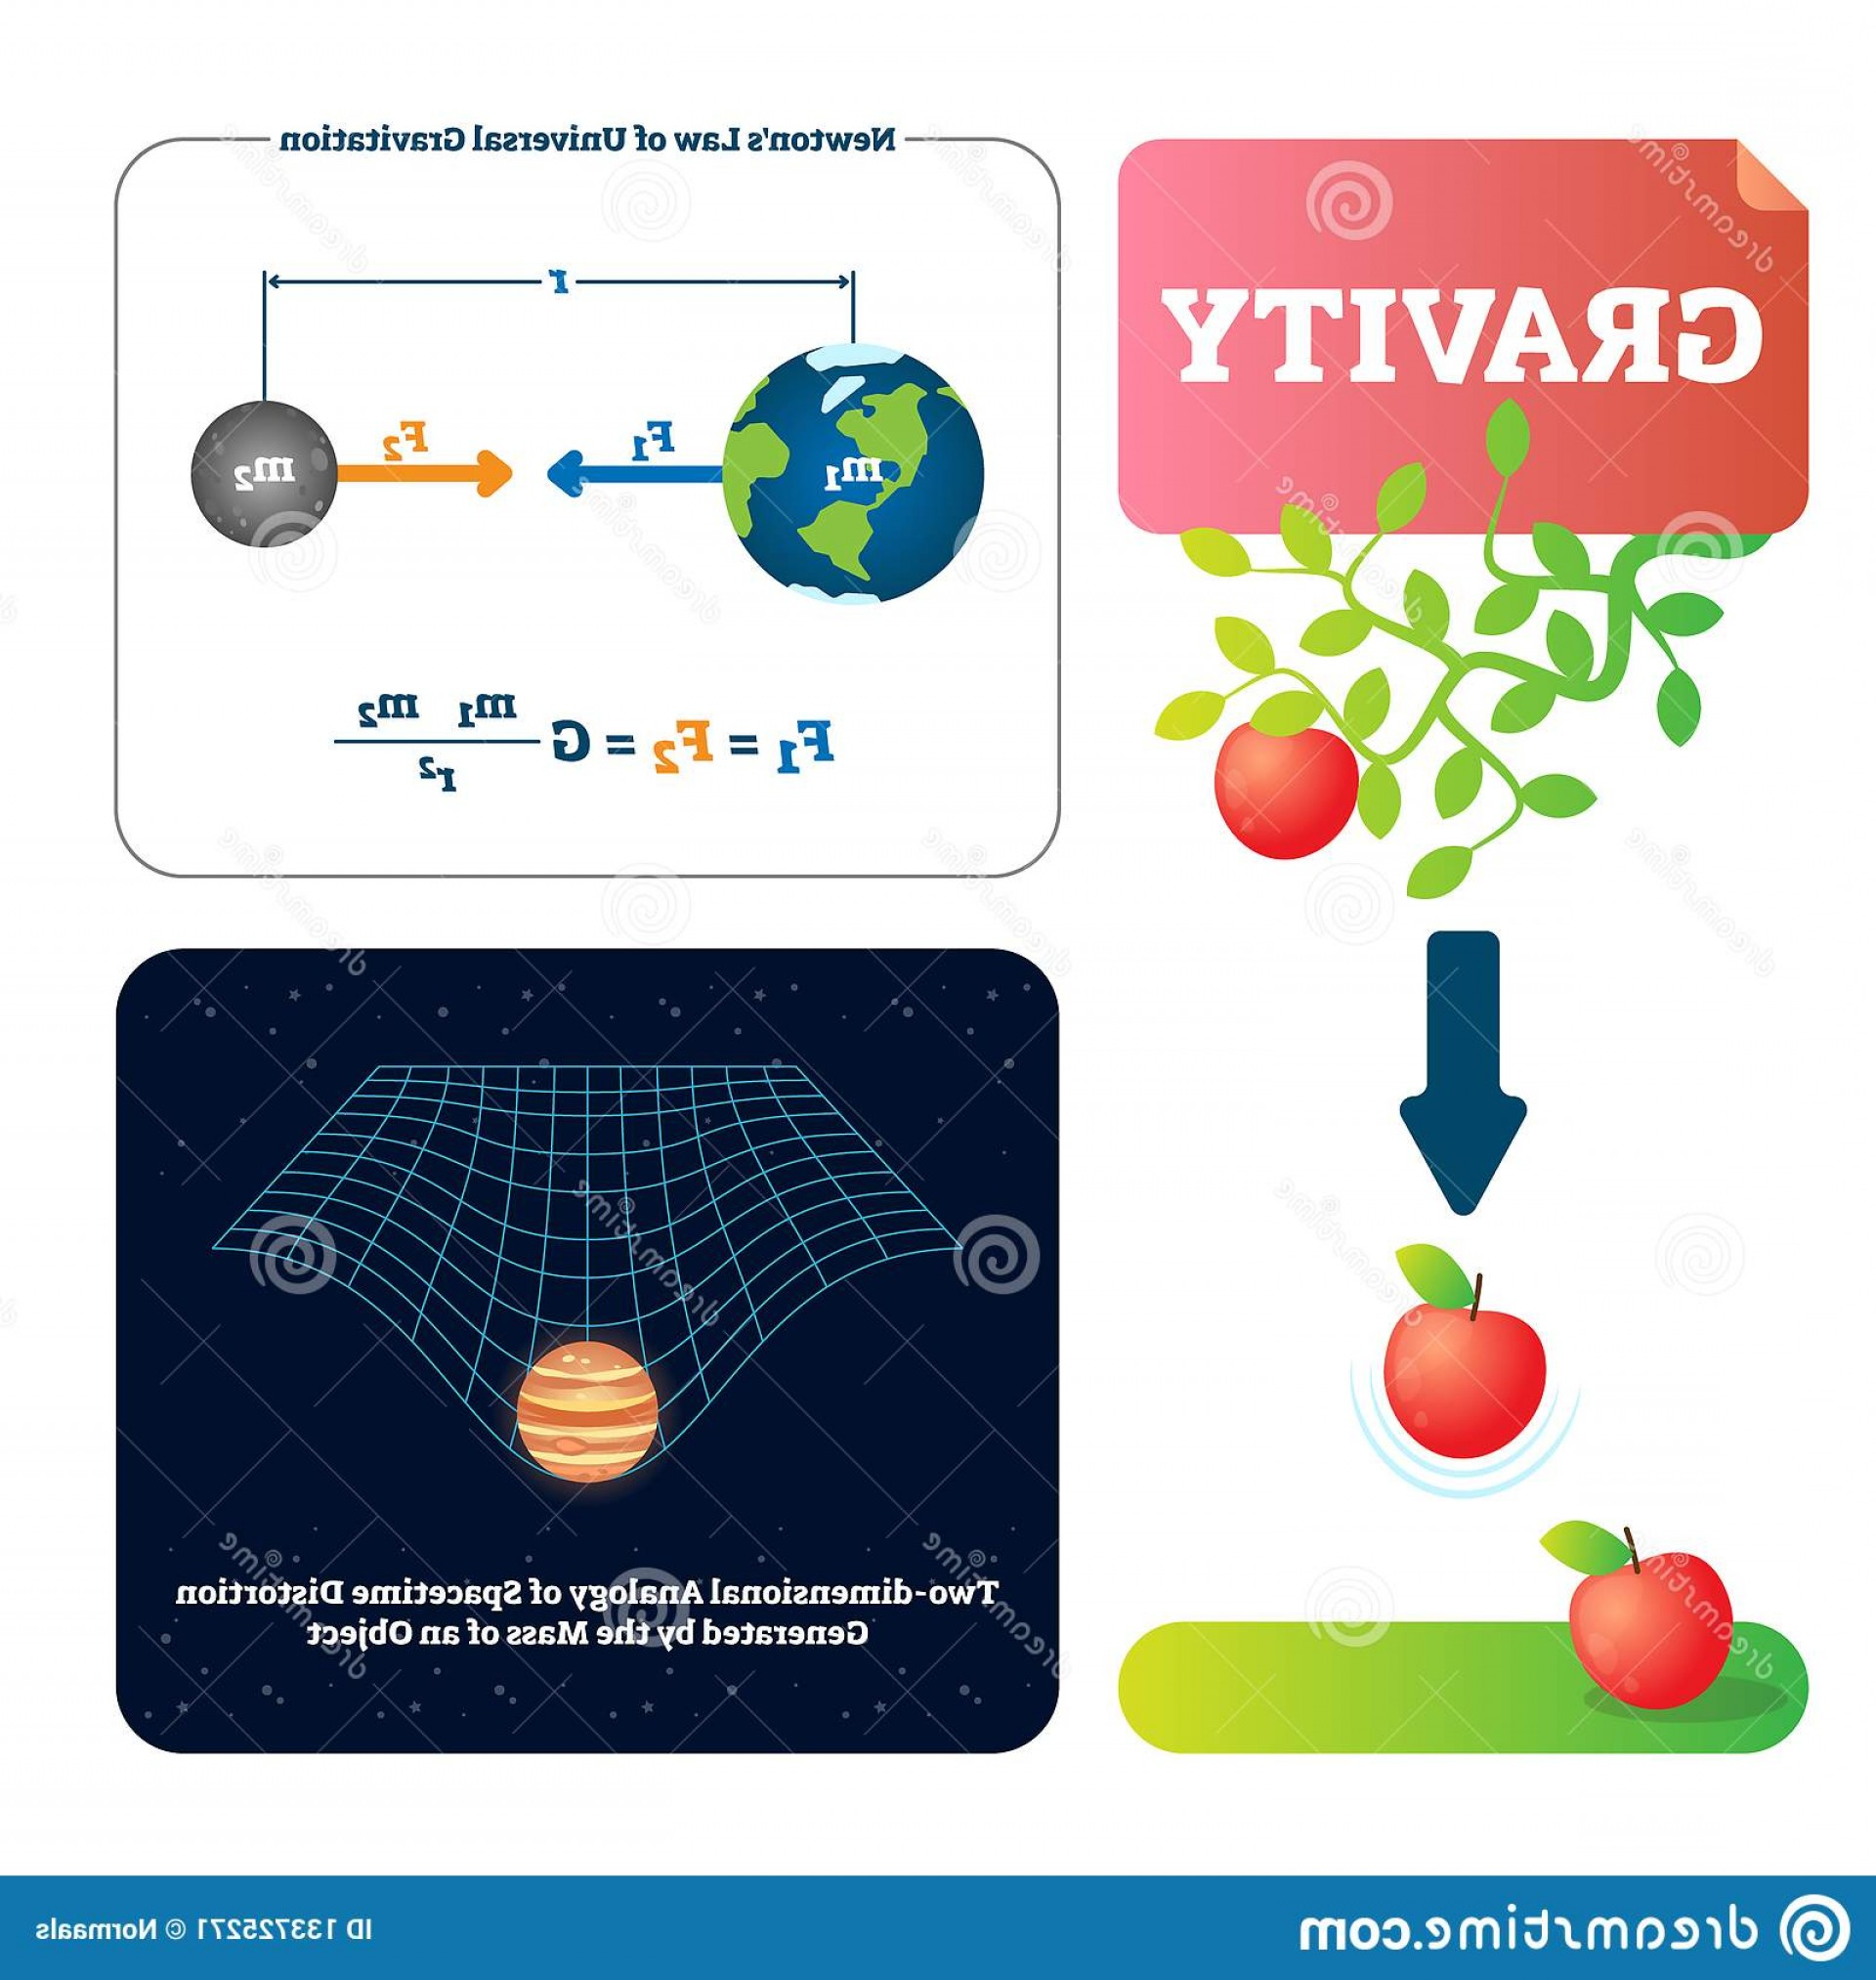 Gravitational Force Vectors: Gravity Vector Illustration Explained Natural Force To Objects Mass Basics Universe Physics Gravitation Gives Weight Image